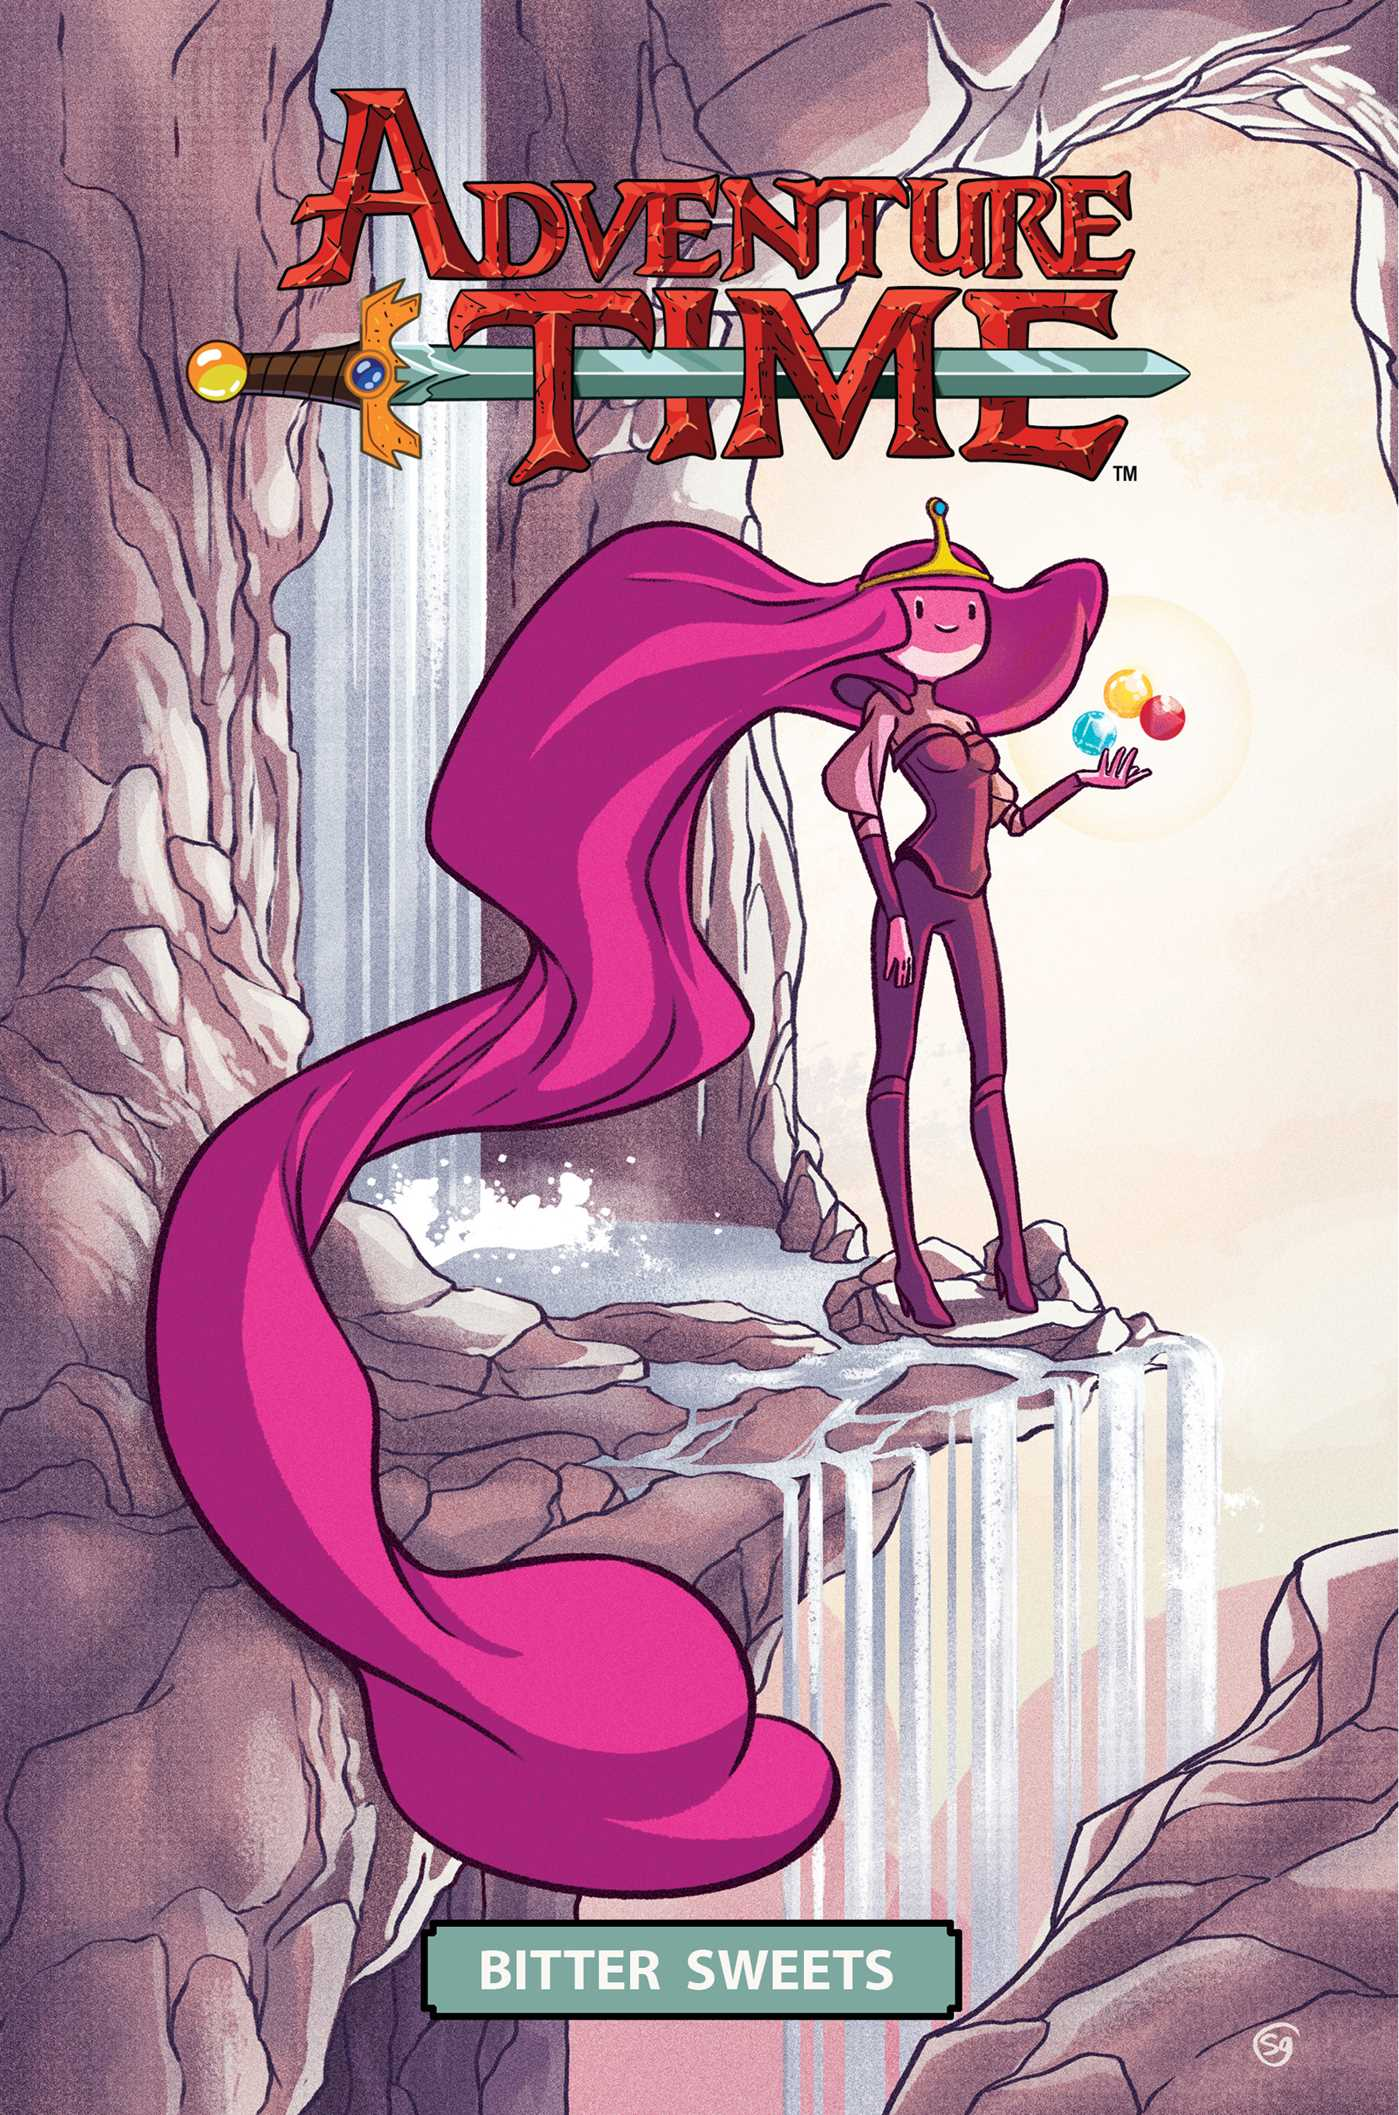 Adventure-time-original-graphic-novel-vol-4-9781608864300_hr